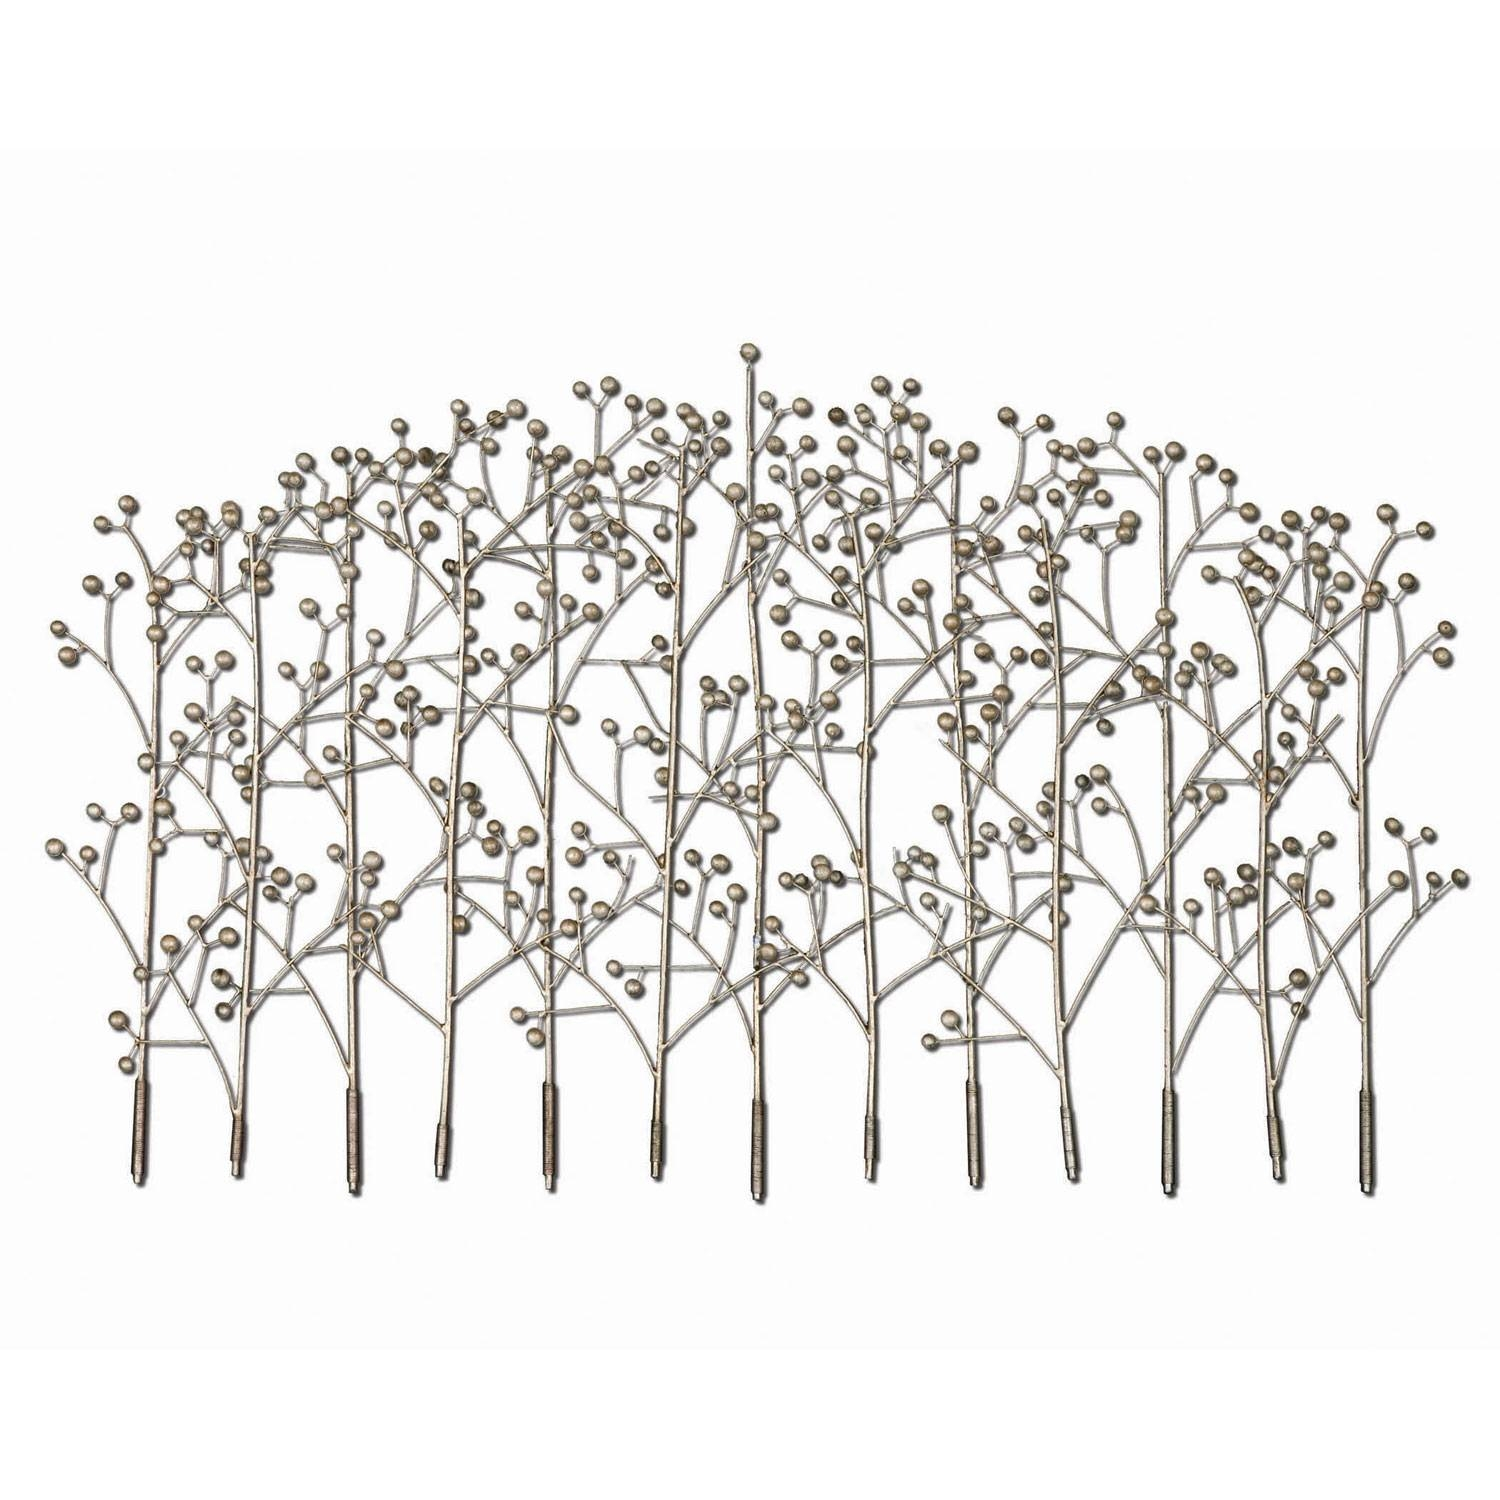 Iron Trees Metal Wall Art Uttermost Wall Sculpture Wall Decor Home Intended For Most Up To Date Uttermost Metal Wall Art (View 3 of 20)